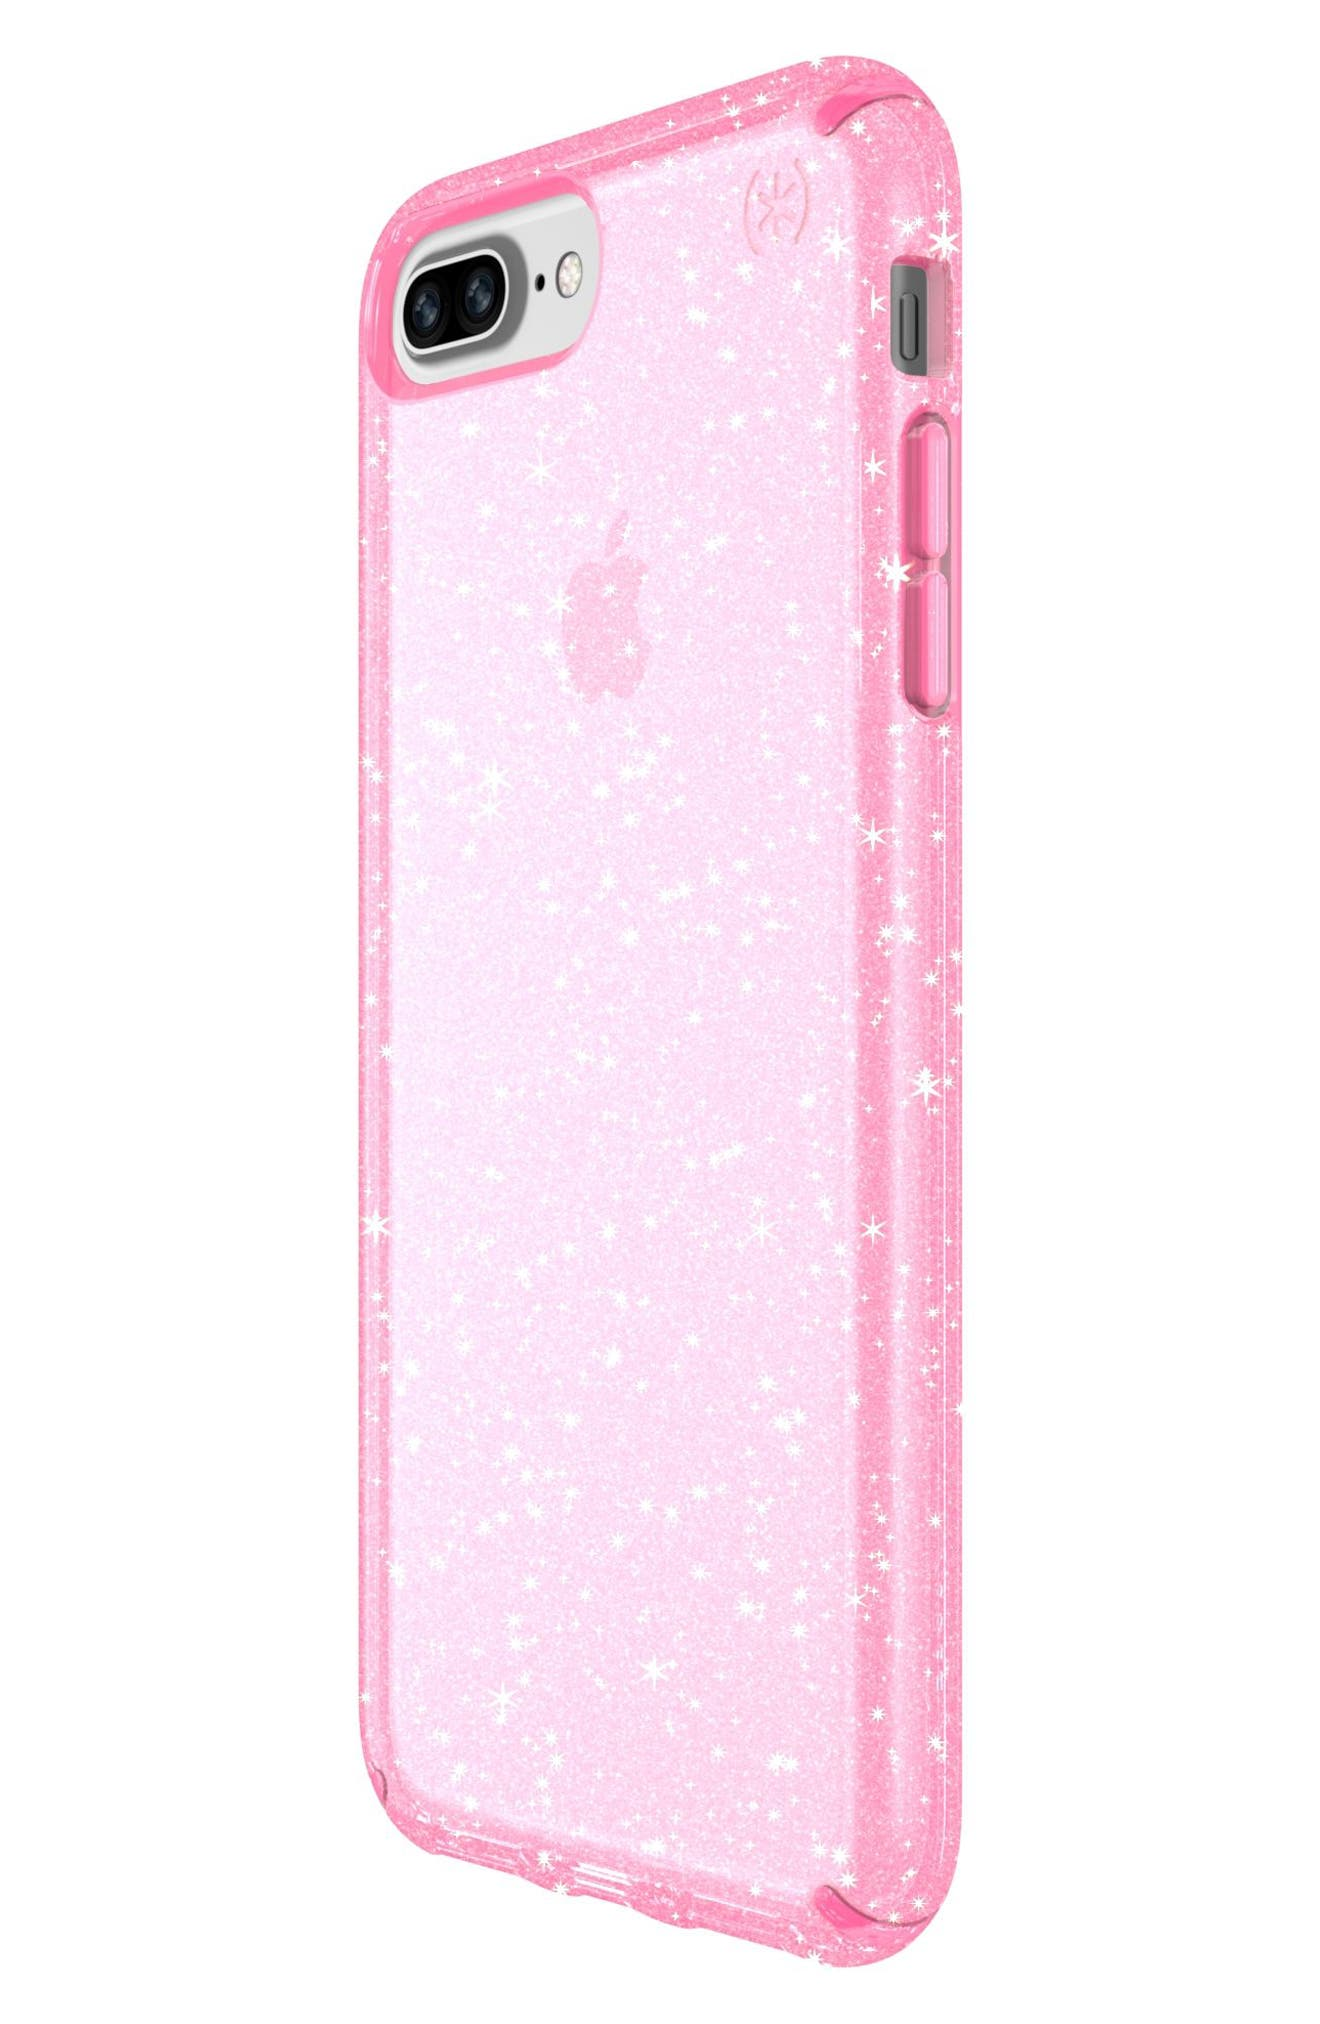 iPhone 6/6s/7/8 Plus Case,                             Alternate thumbnail 5, color,                             715